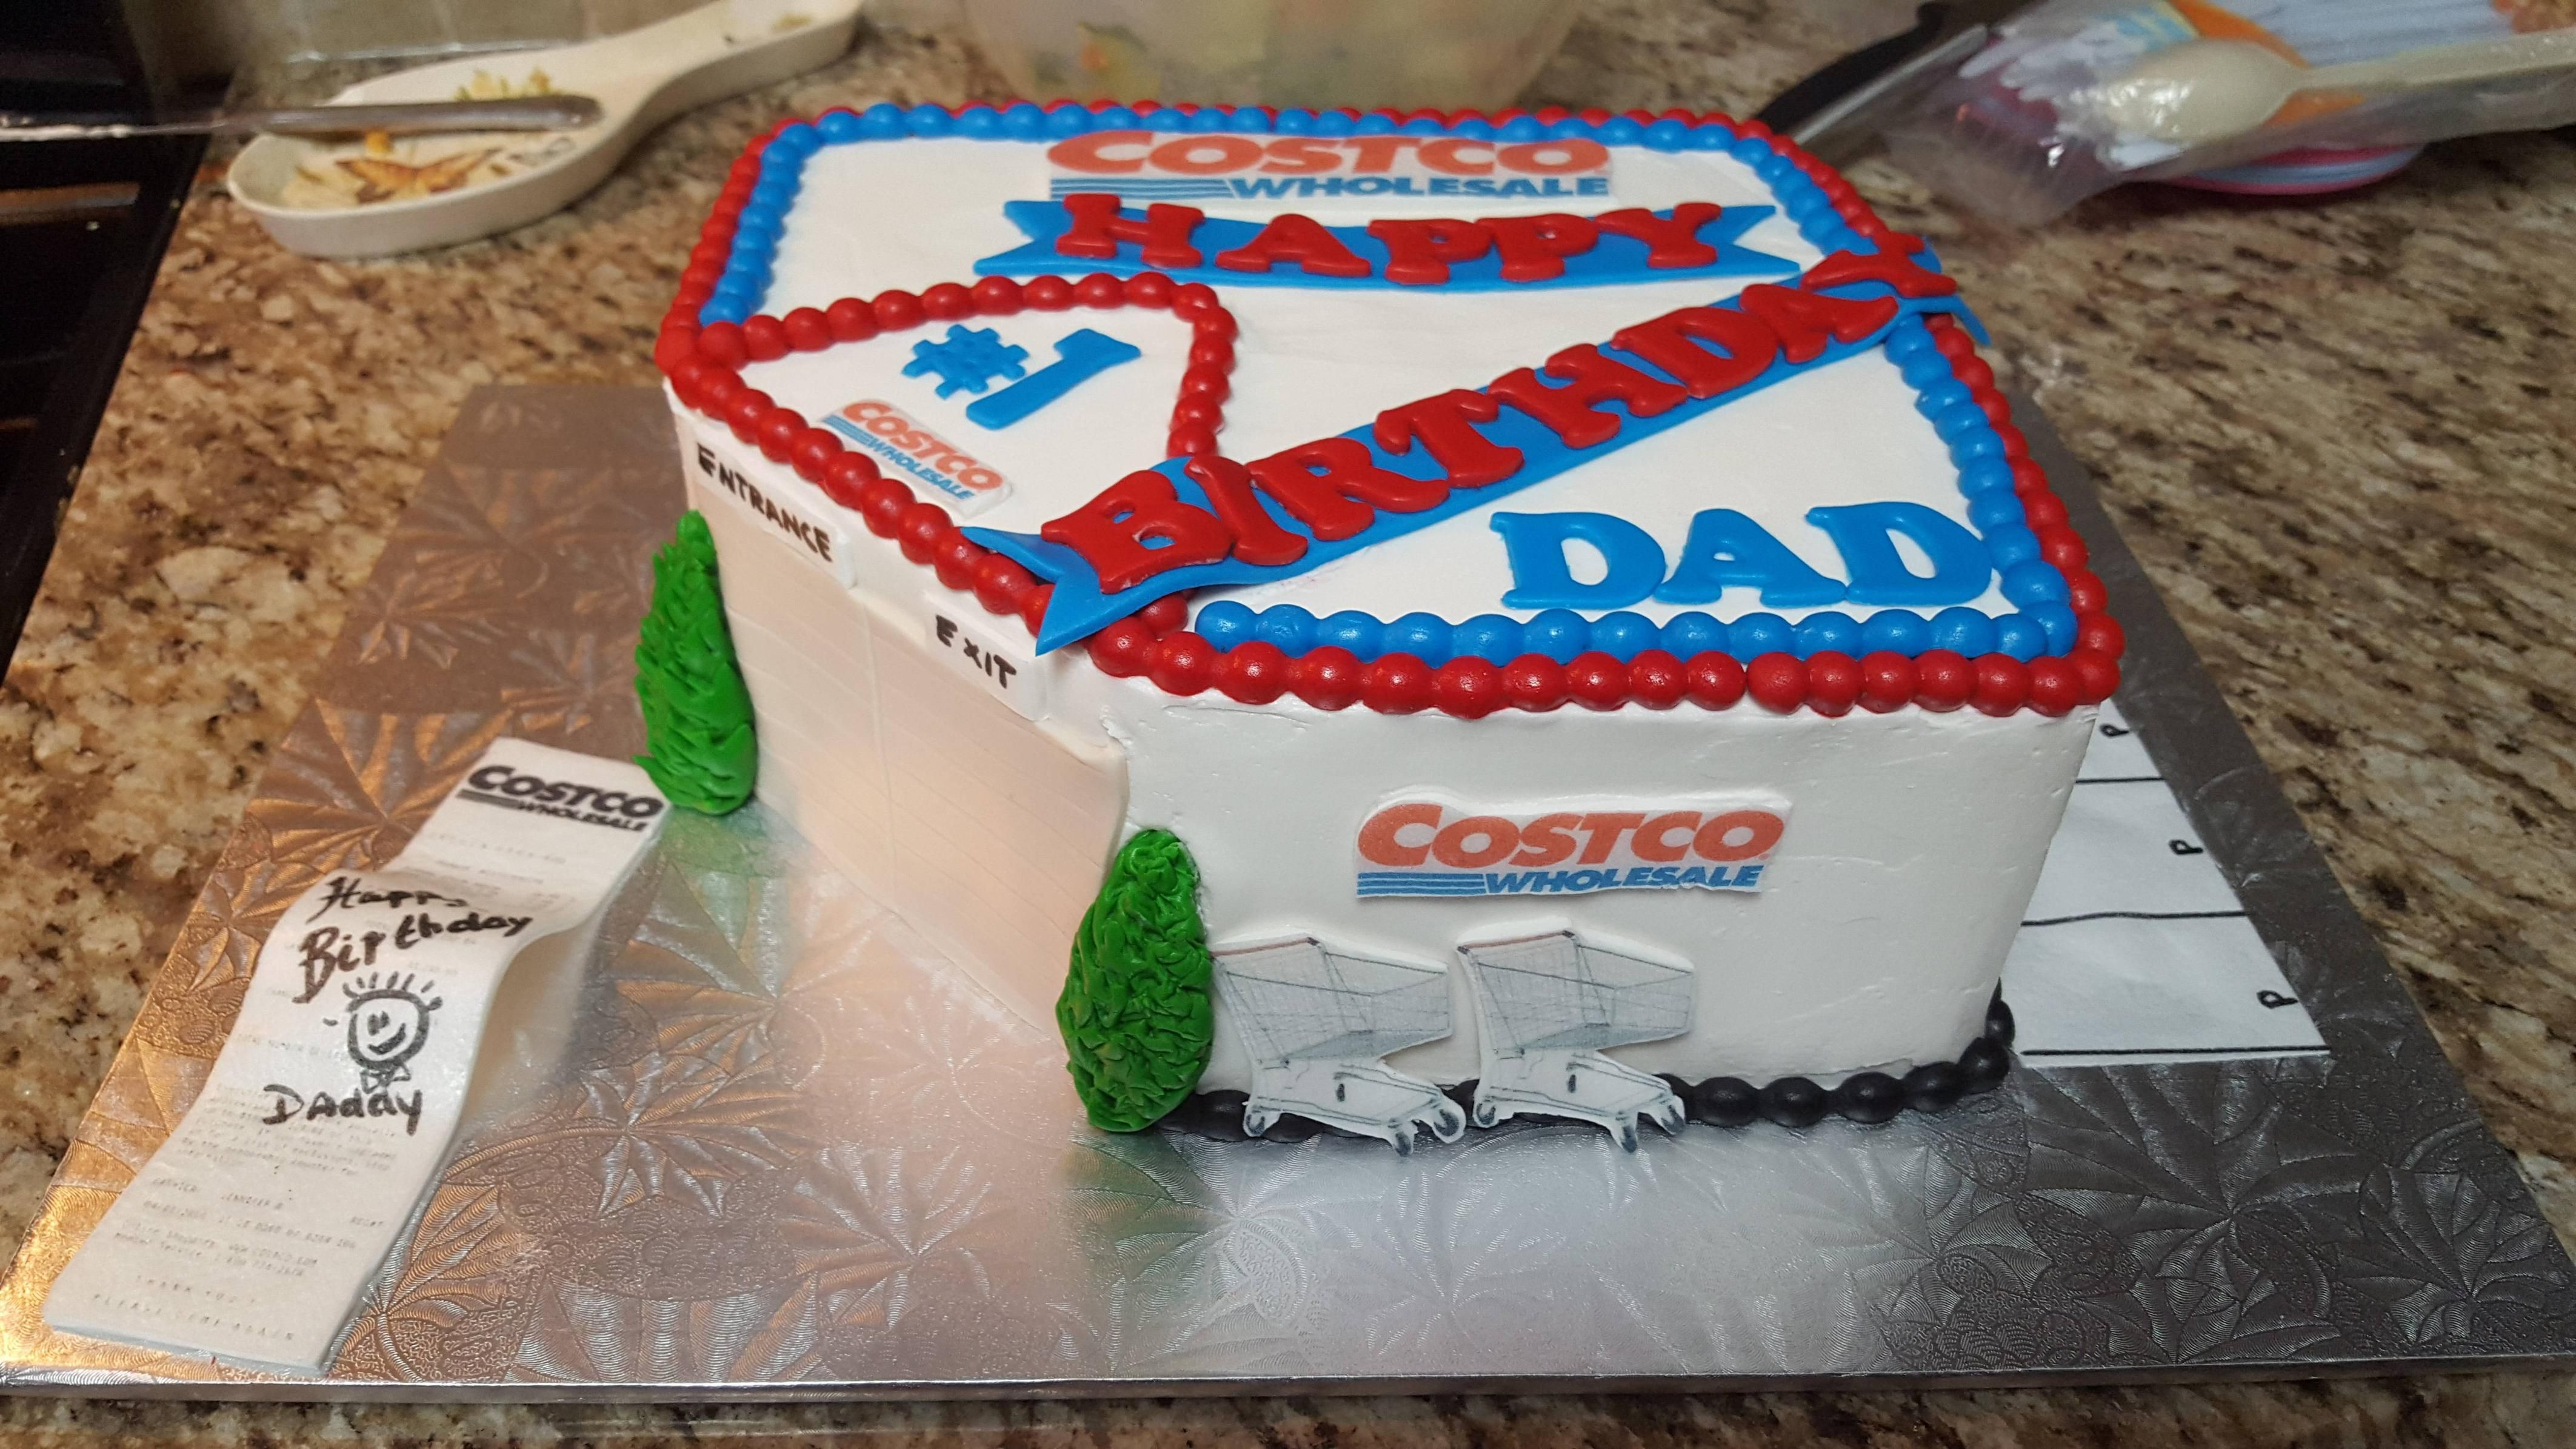 When This Dad Asked For a Costco Birthday Cake He Was Not